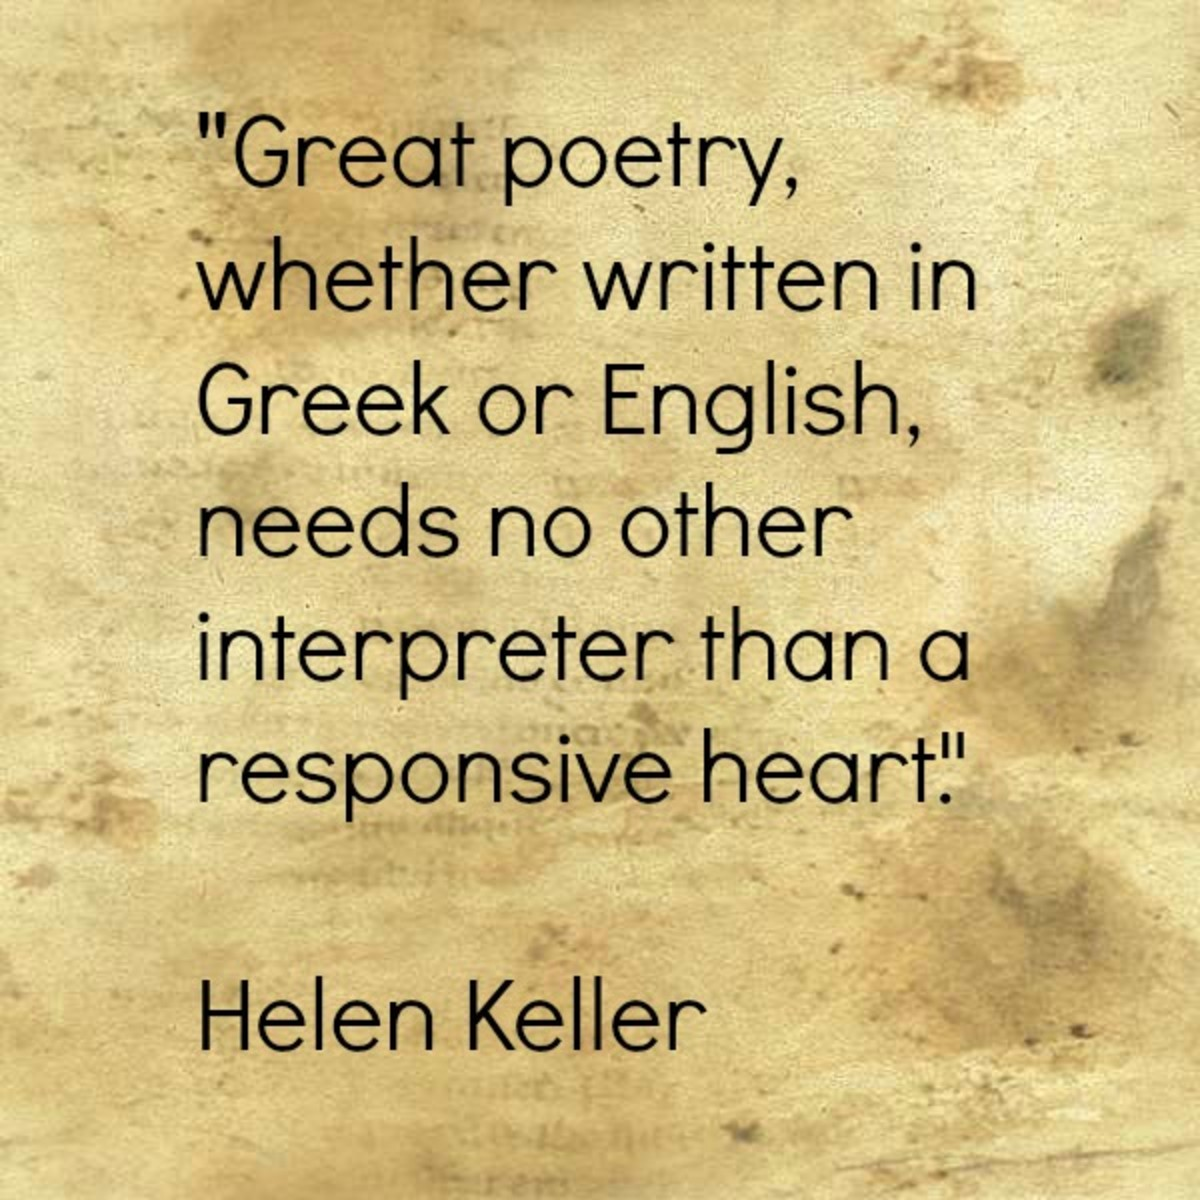 poems-and-poetry-the-heart-of-a-poet